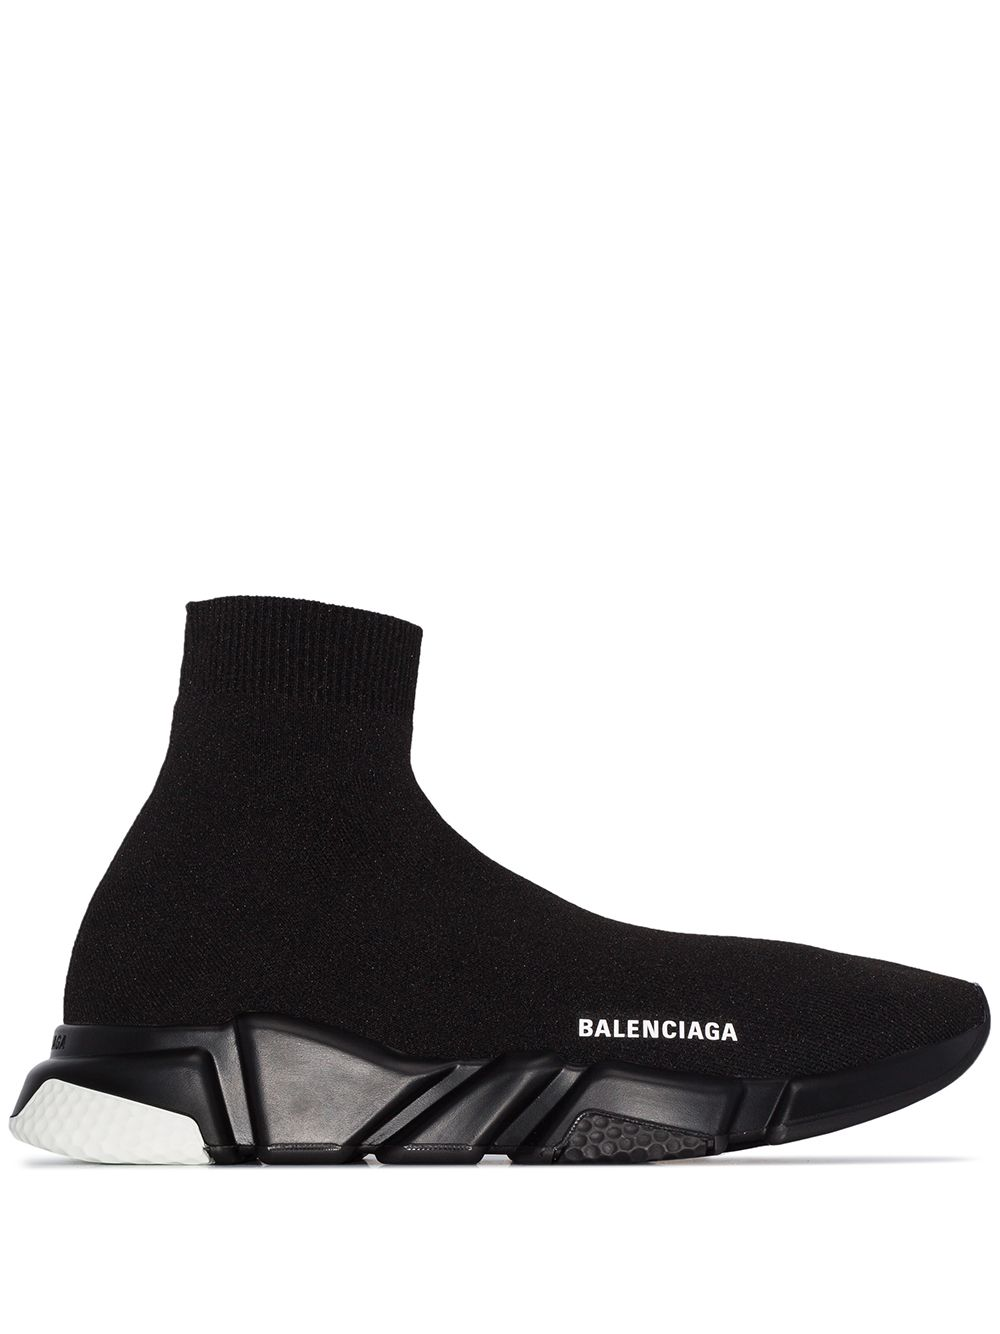 BALENCIAGA speed trainers black